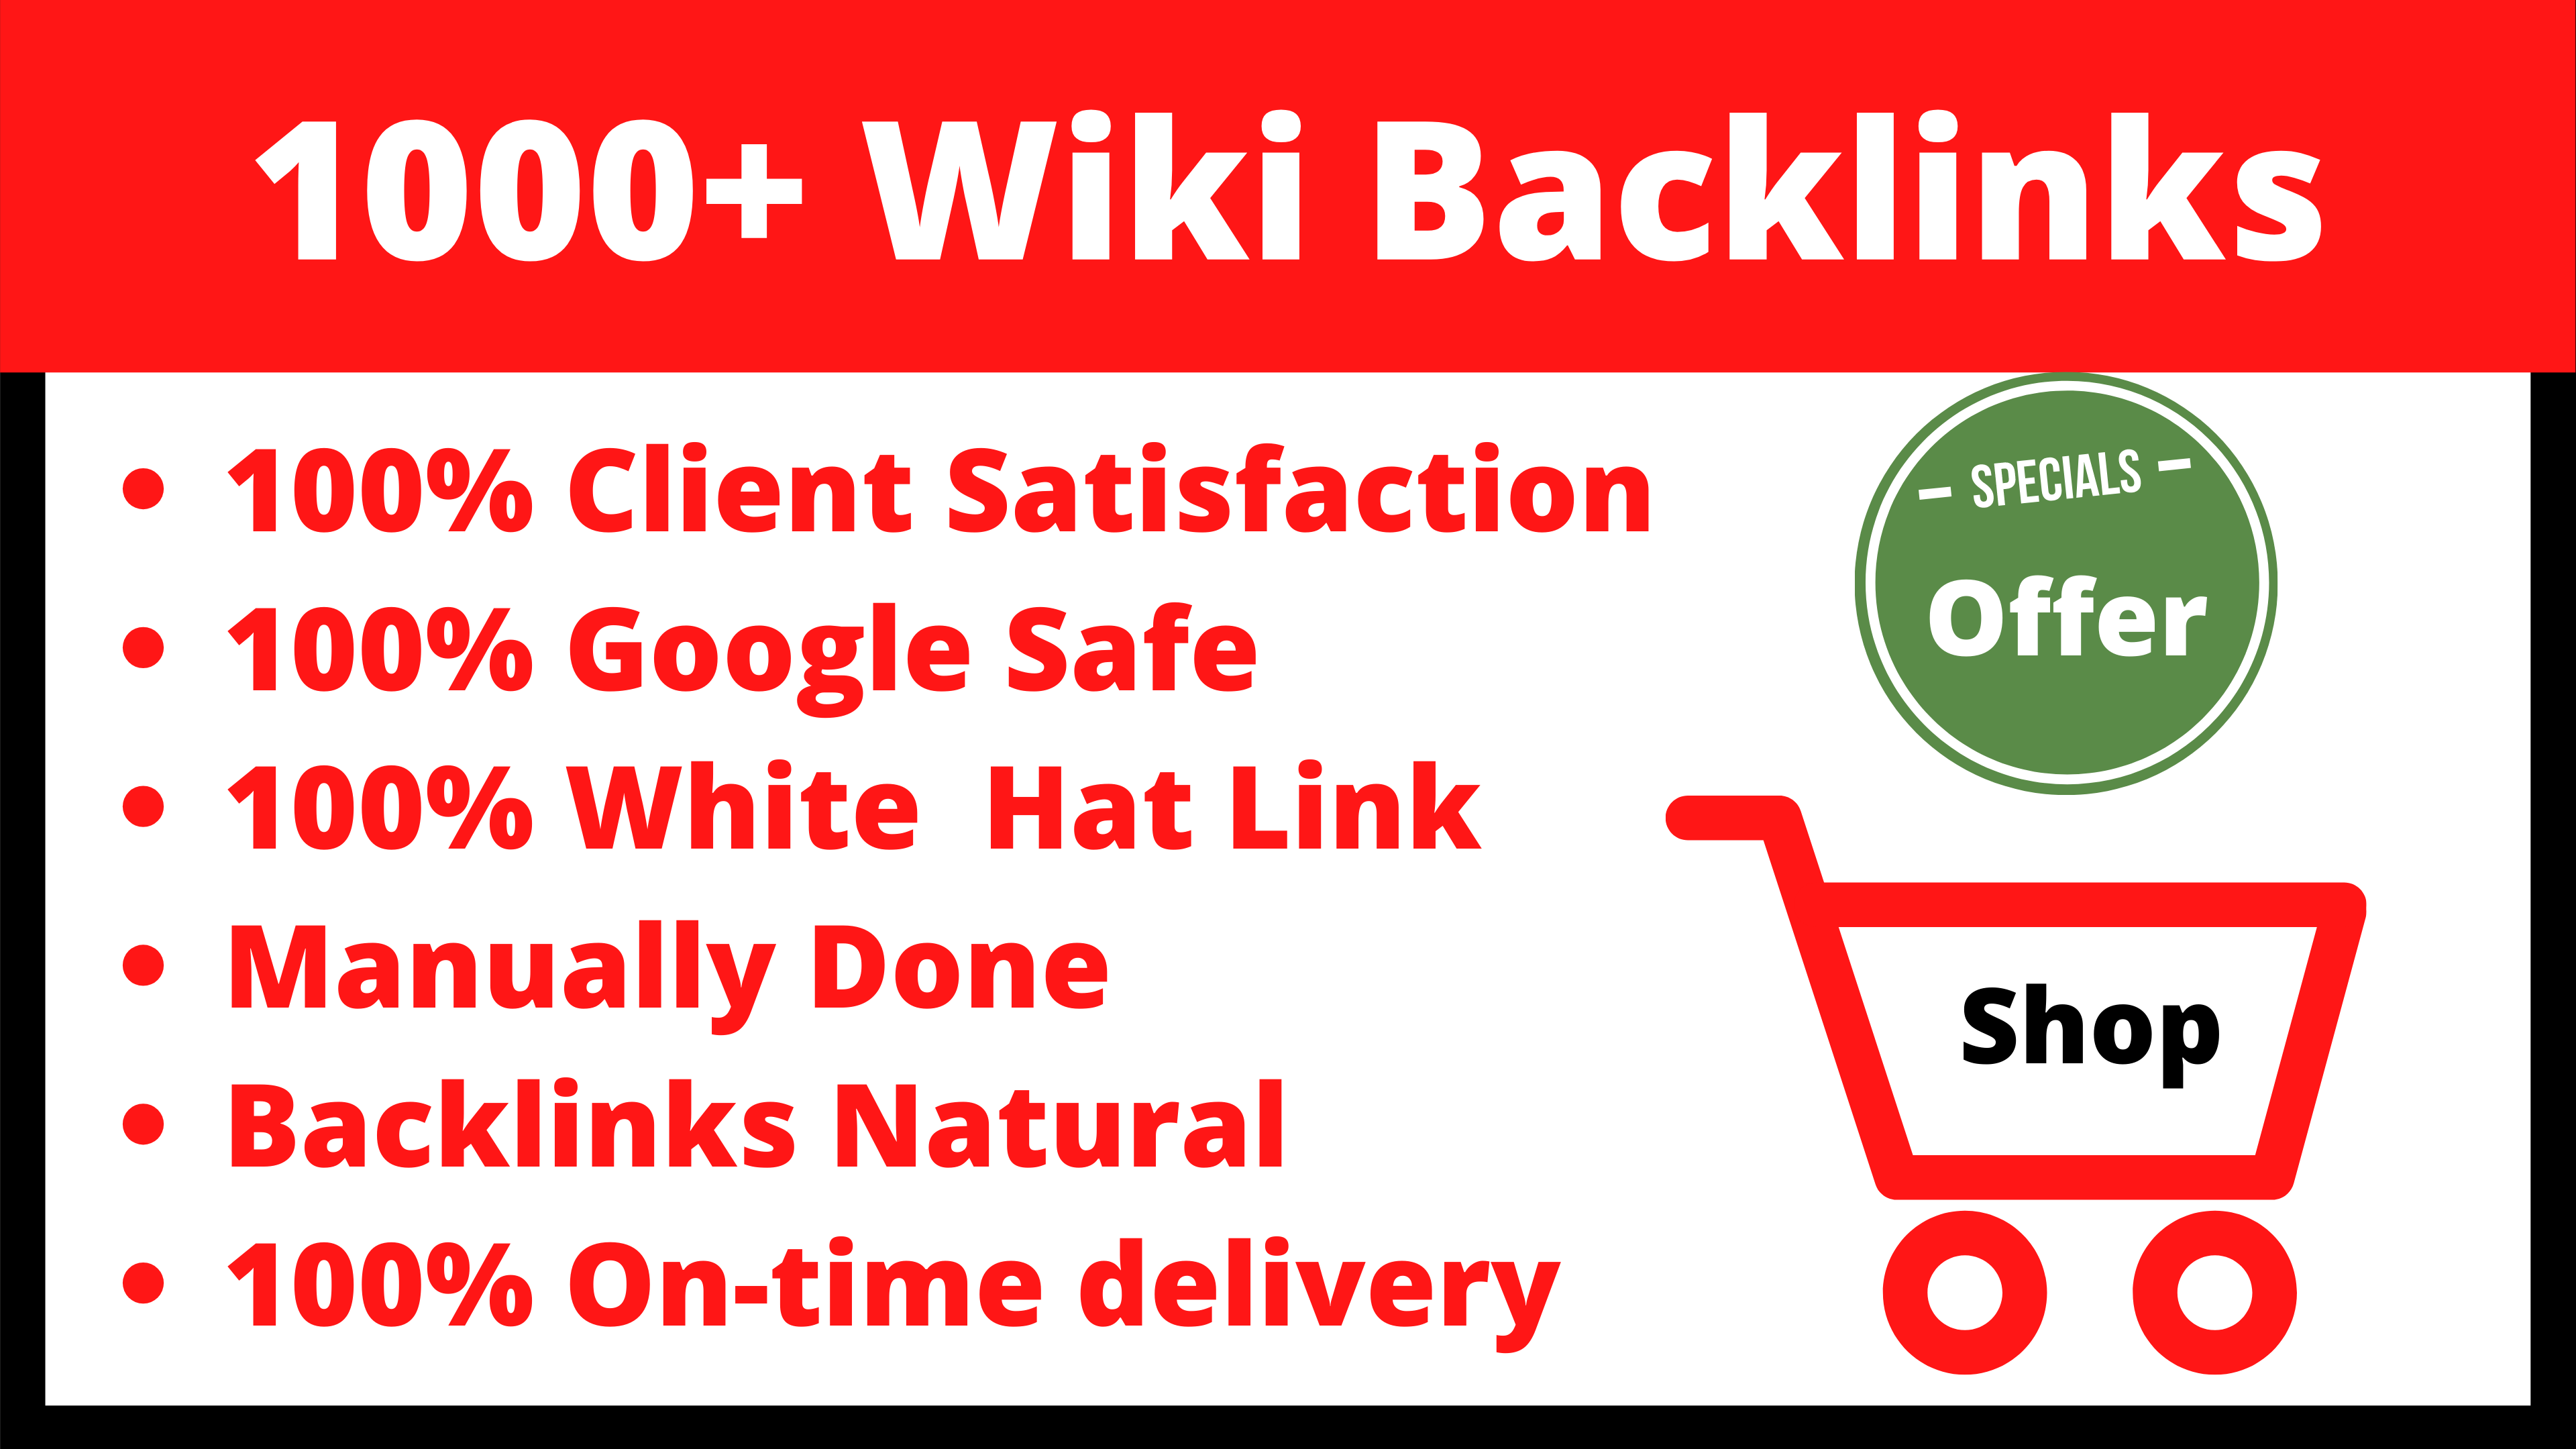 SEO Wiki 1000+ Backlinks Cheap Price Limited Time Offer